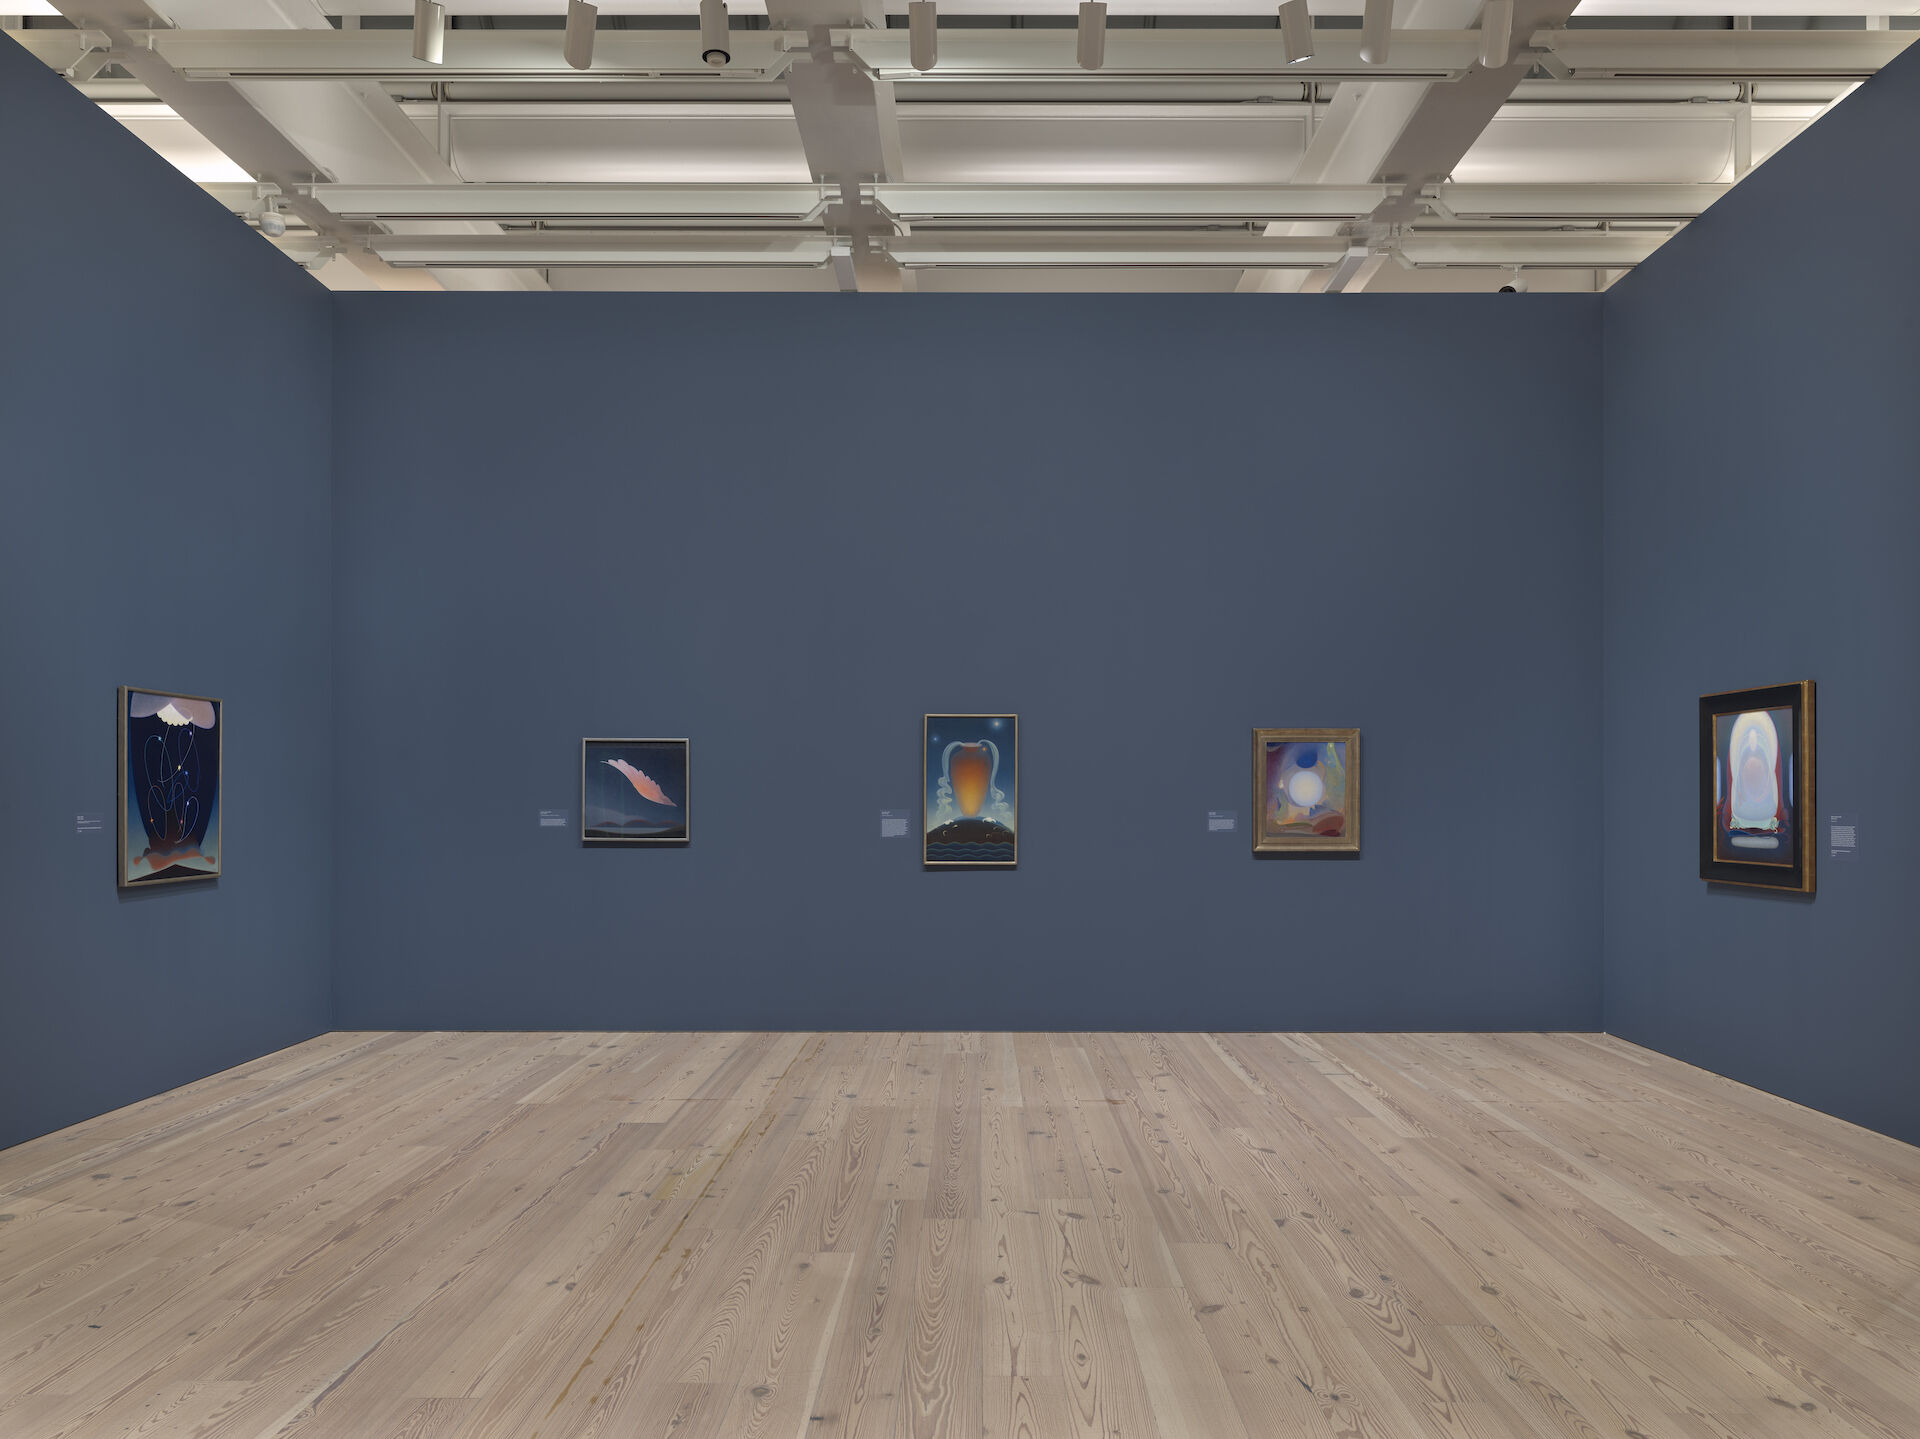 Looking into a blue room in the exhibition, Agnes Pelton: Desert Transcendentalist, paintings appear on the walls. From left to right: Orbits, 1934; The Primal Wing, 1933; Even Song, 1934; Interval, 1950; Mother of Silence, 1933.